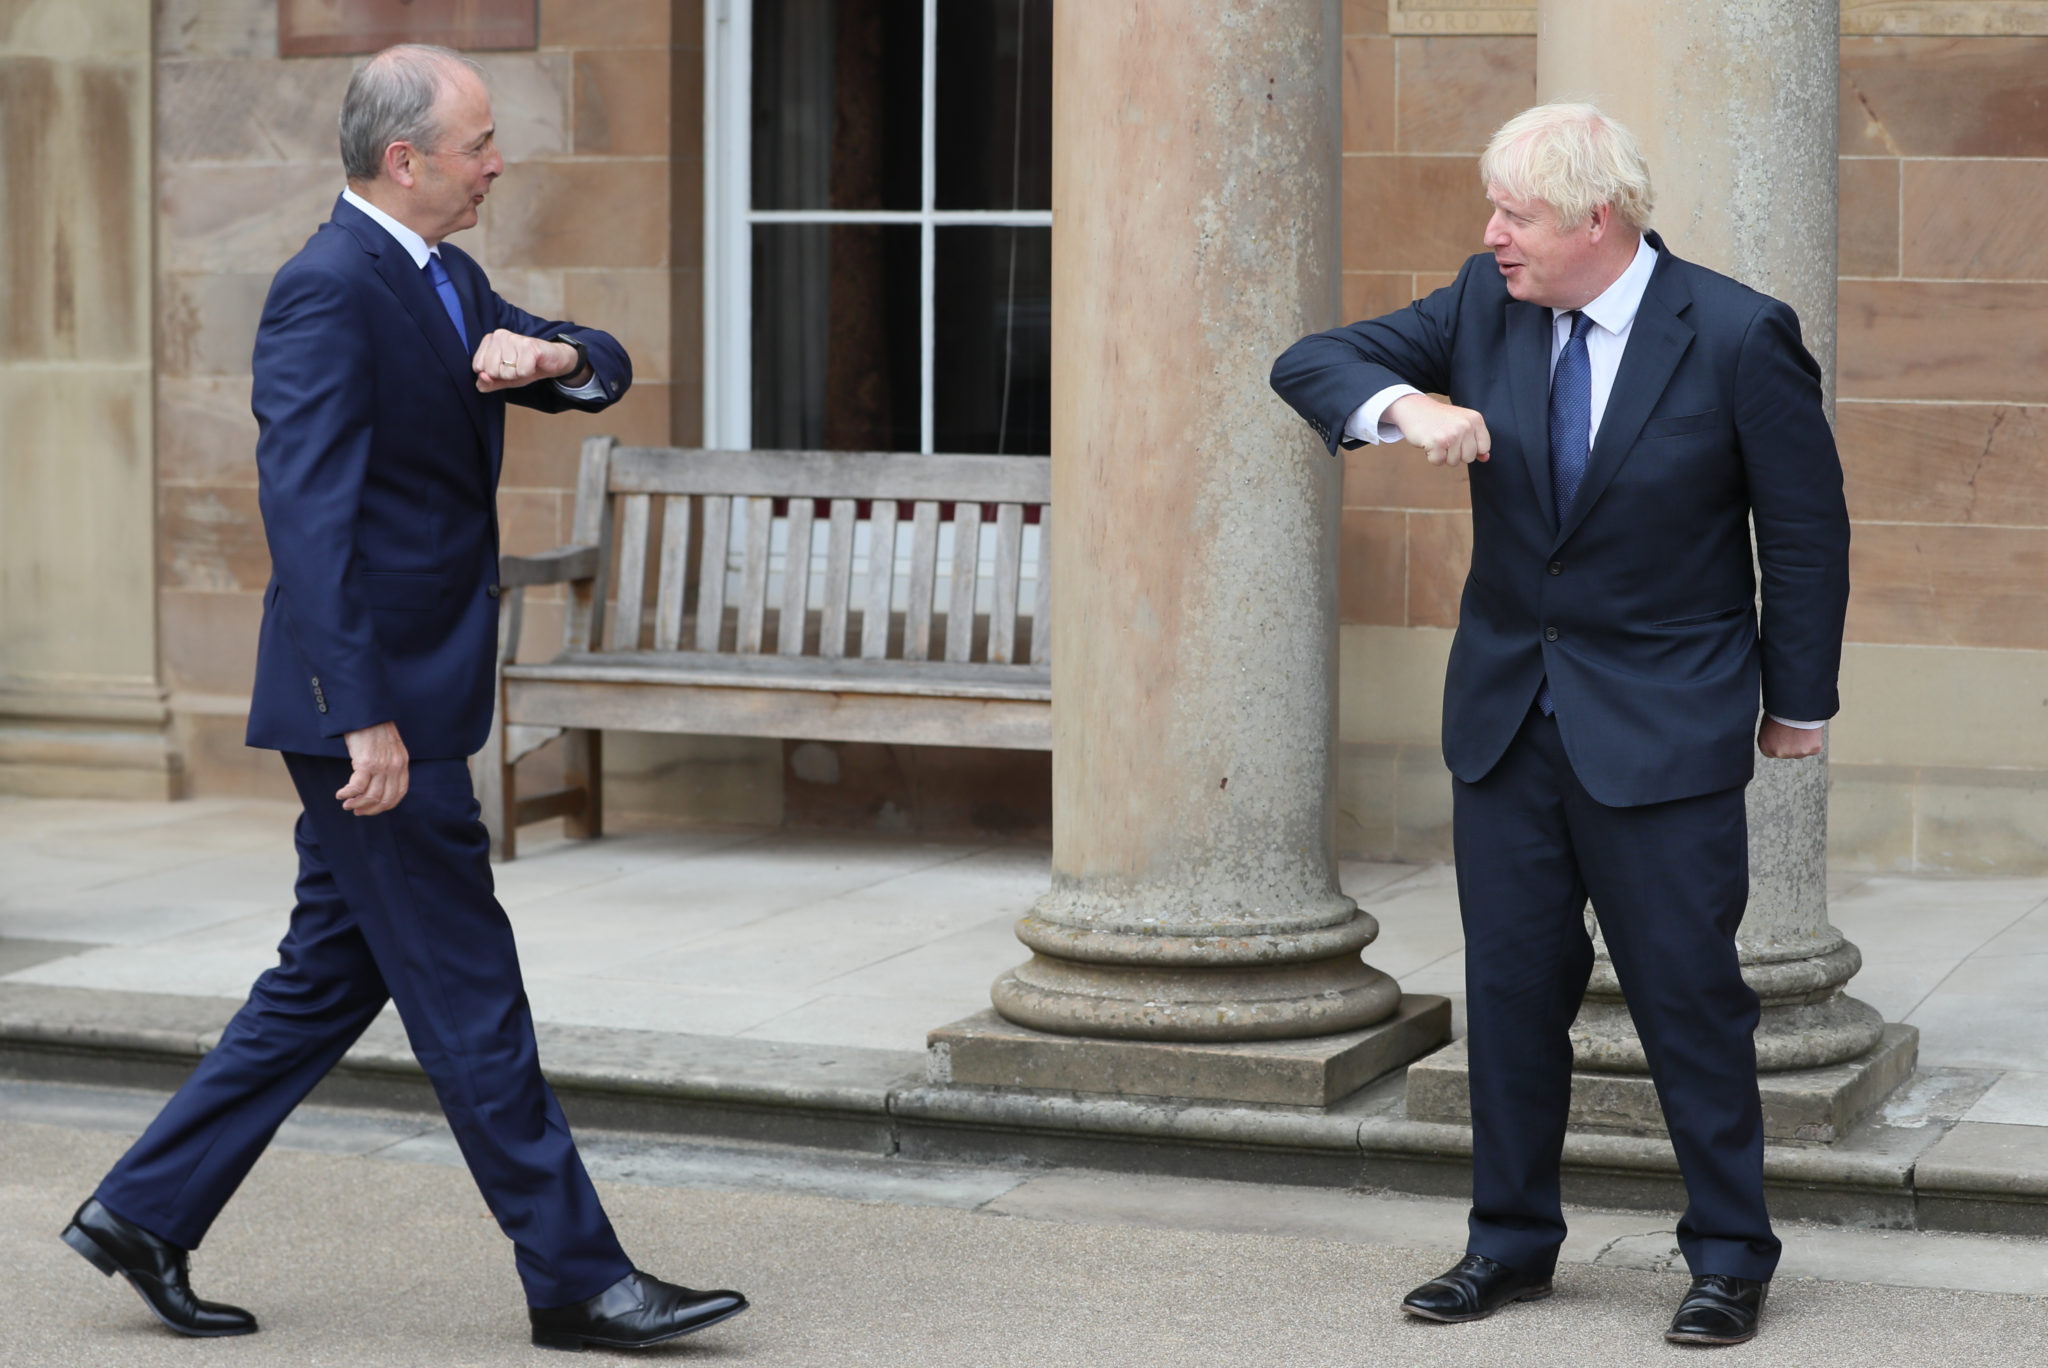 The Taoiseach Micheál Martin and UK Prime Minister Boris Johnson greet each other with an elbow bump at Hillsborough Castle in Belfast Brexit